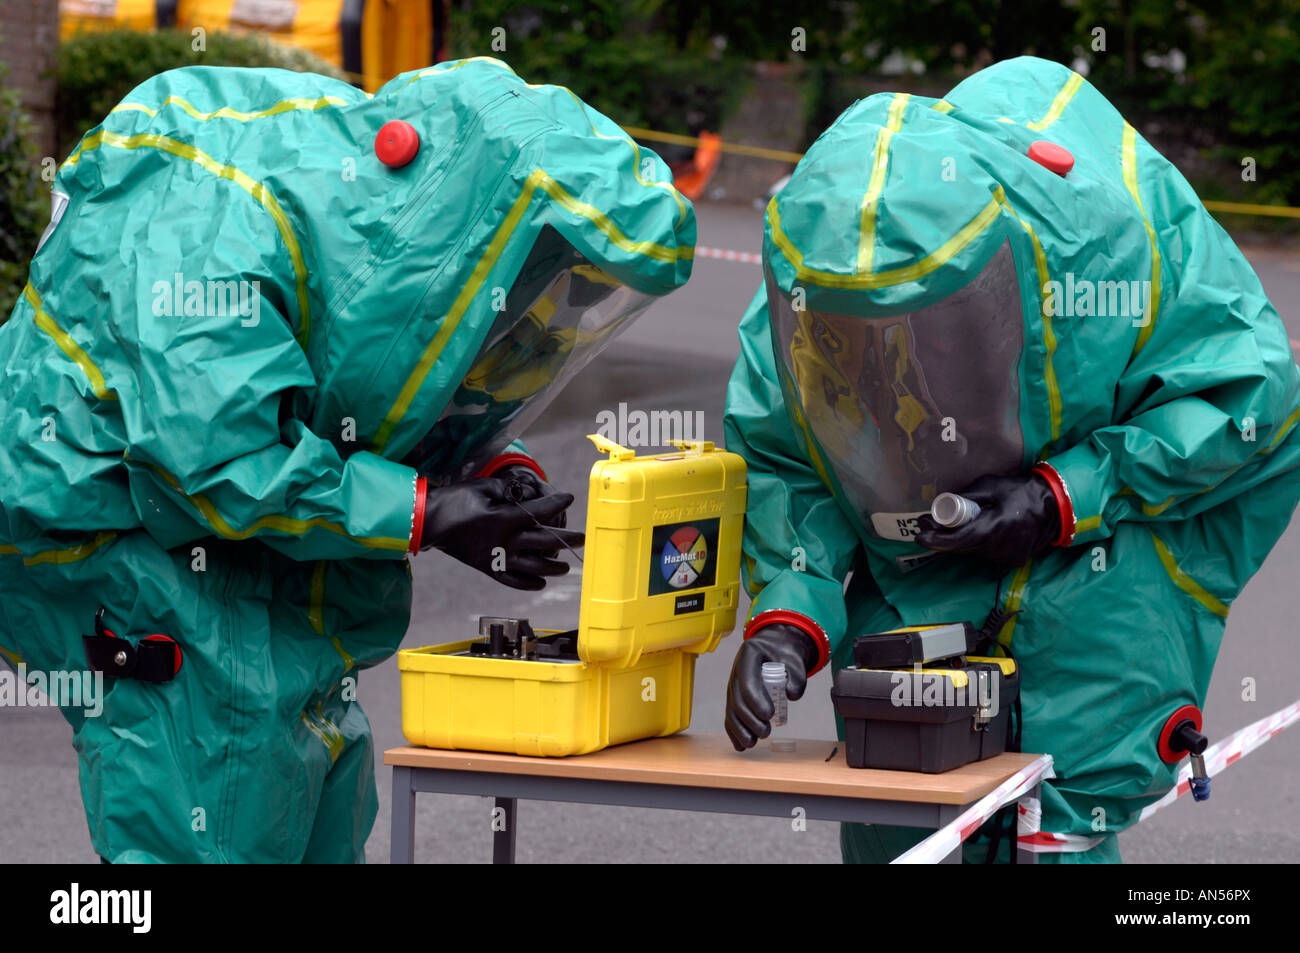 Emergency services take part in a chemical or biological attack exercise, Britain, UK Stock Photo